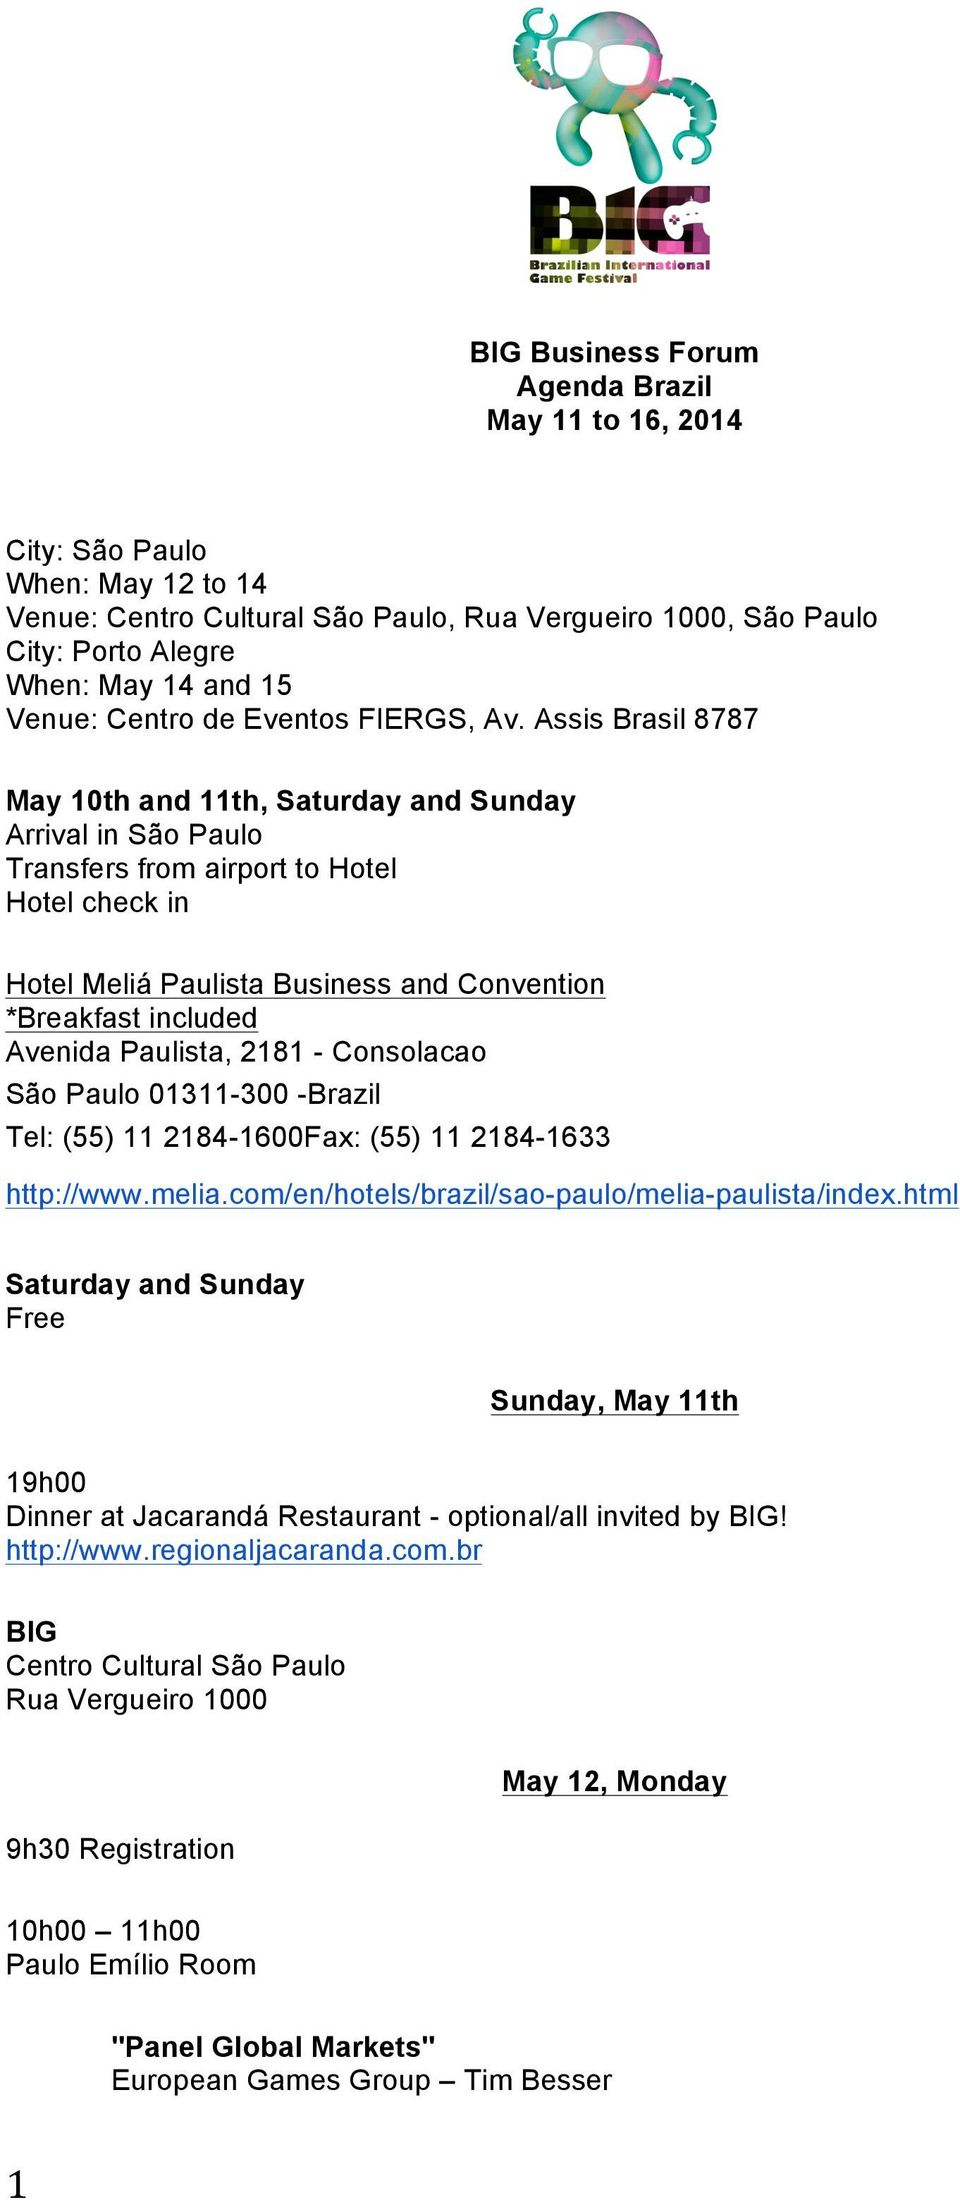 Assis Brasil 8787 May 10th and 11th, Saturday and Sunday Arrival in São Paulo Transfers from airport to Hotel Hotel check in Hotel Meliá Paulista Business and Convention *Breakfast included Avenida